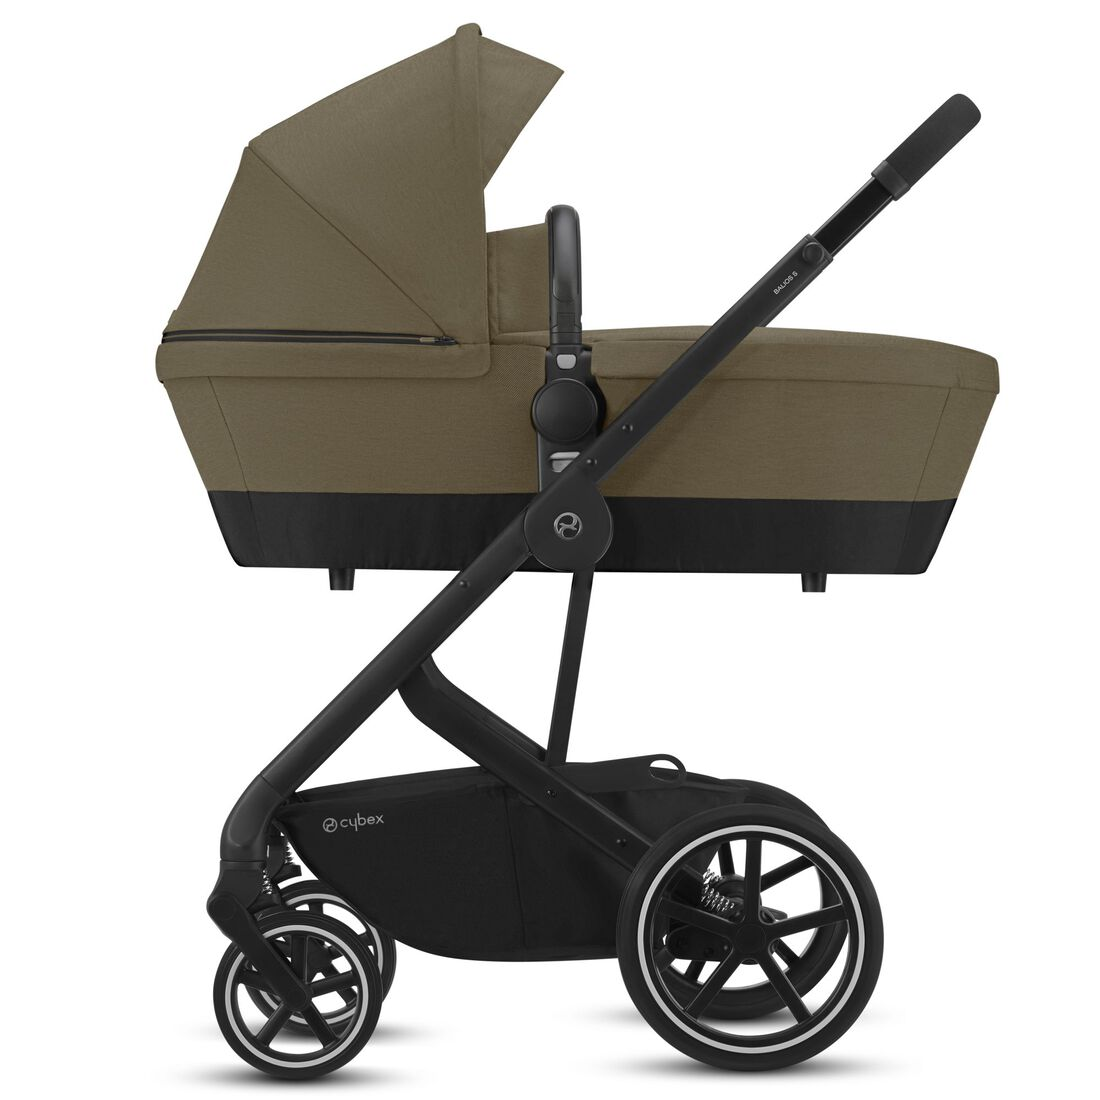 CYBEX Balios S 2-in-1 - Classic Beige in Classic Beige large image number 2